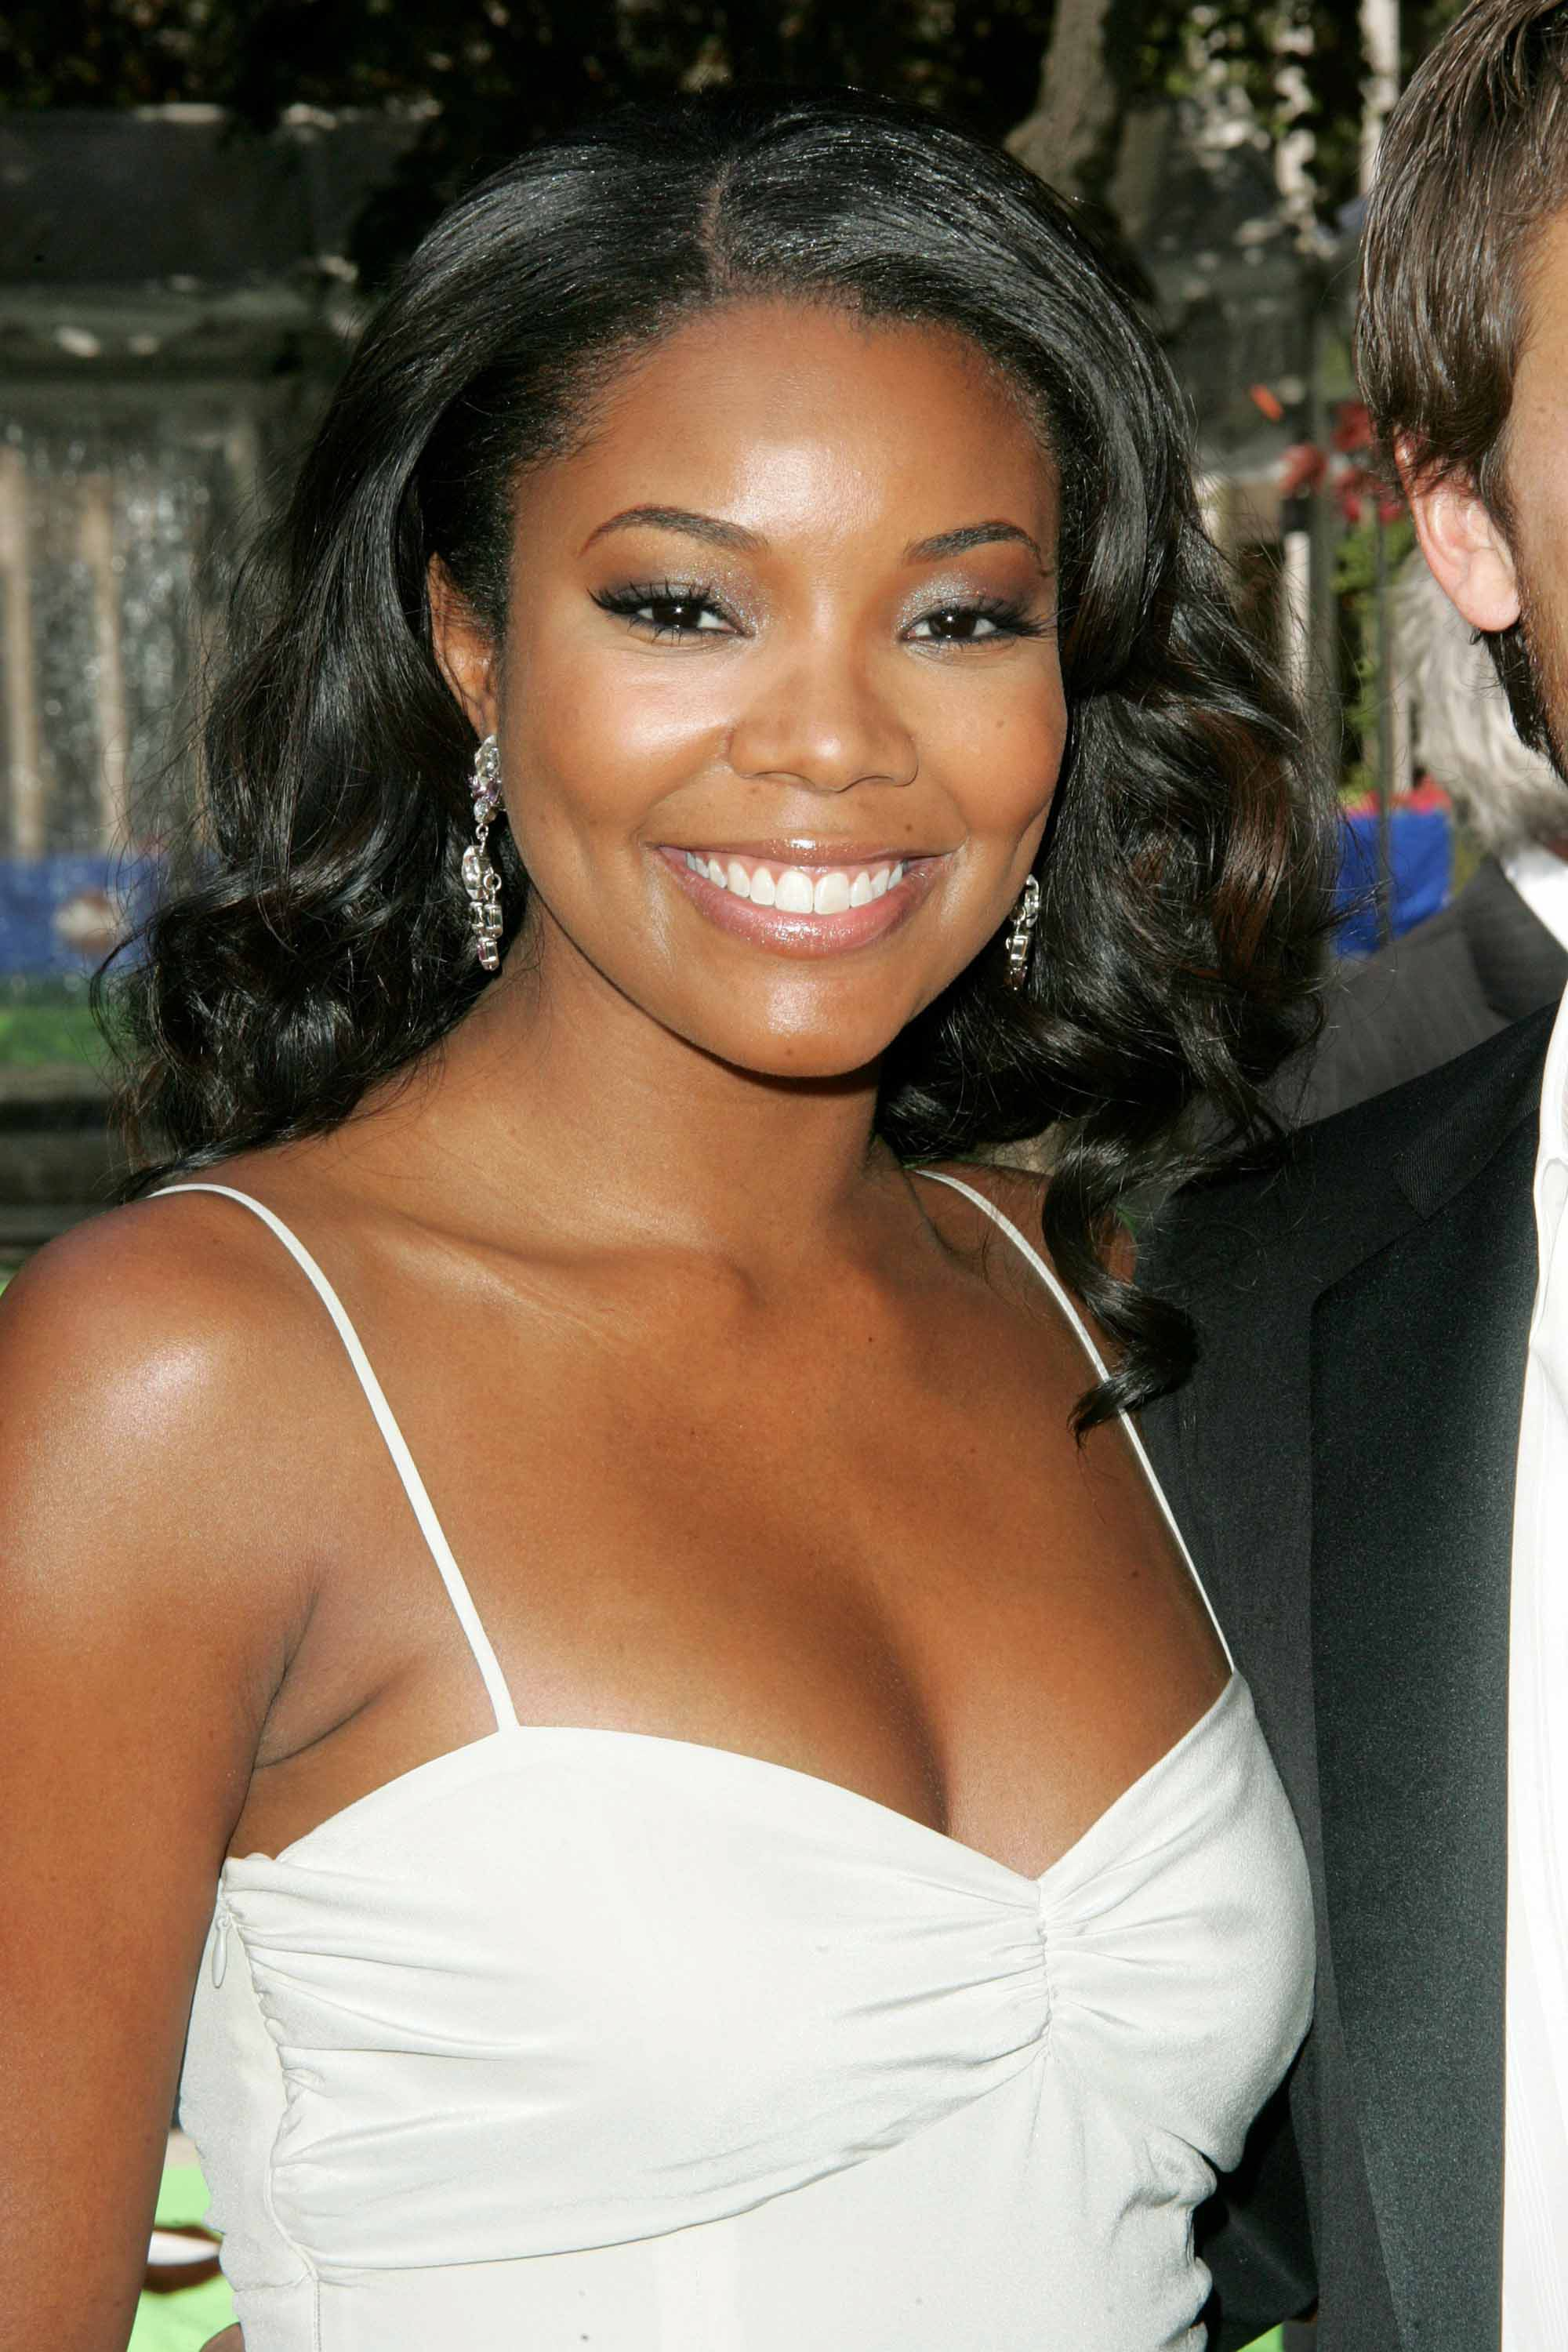 HQ Gabrielle Union Wallpapers | File 379.55Kb